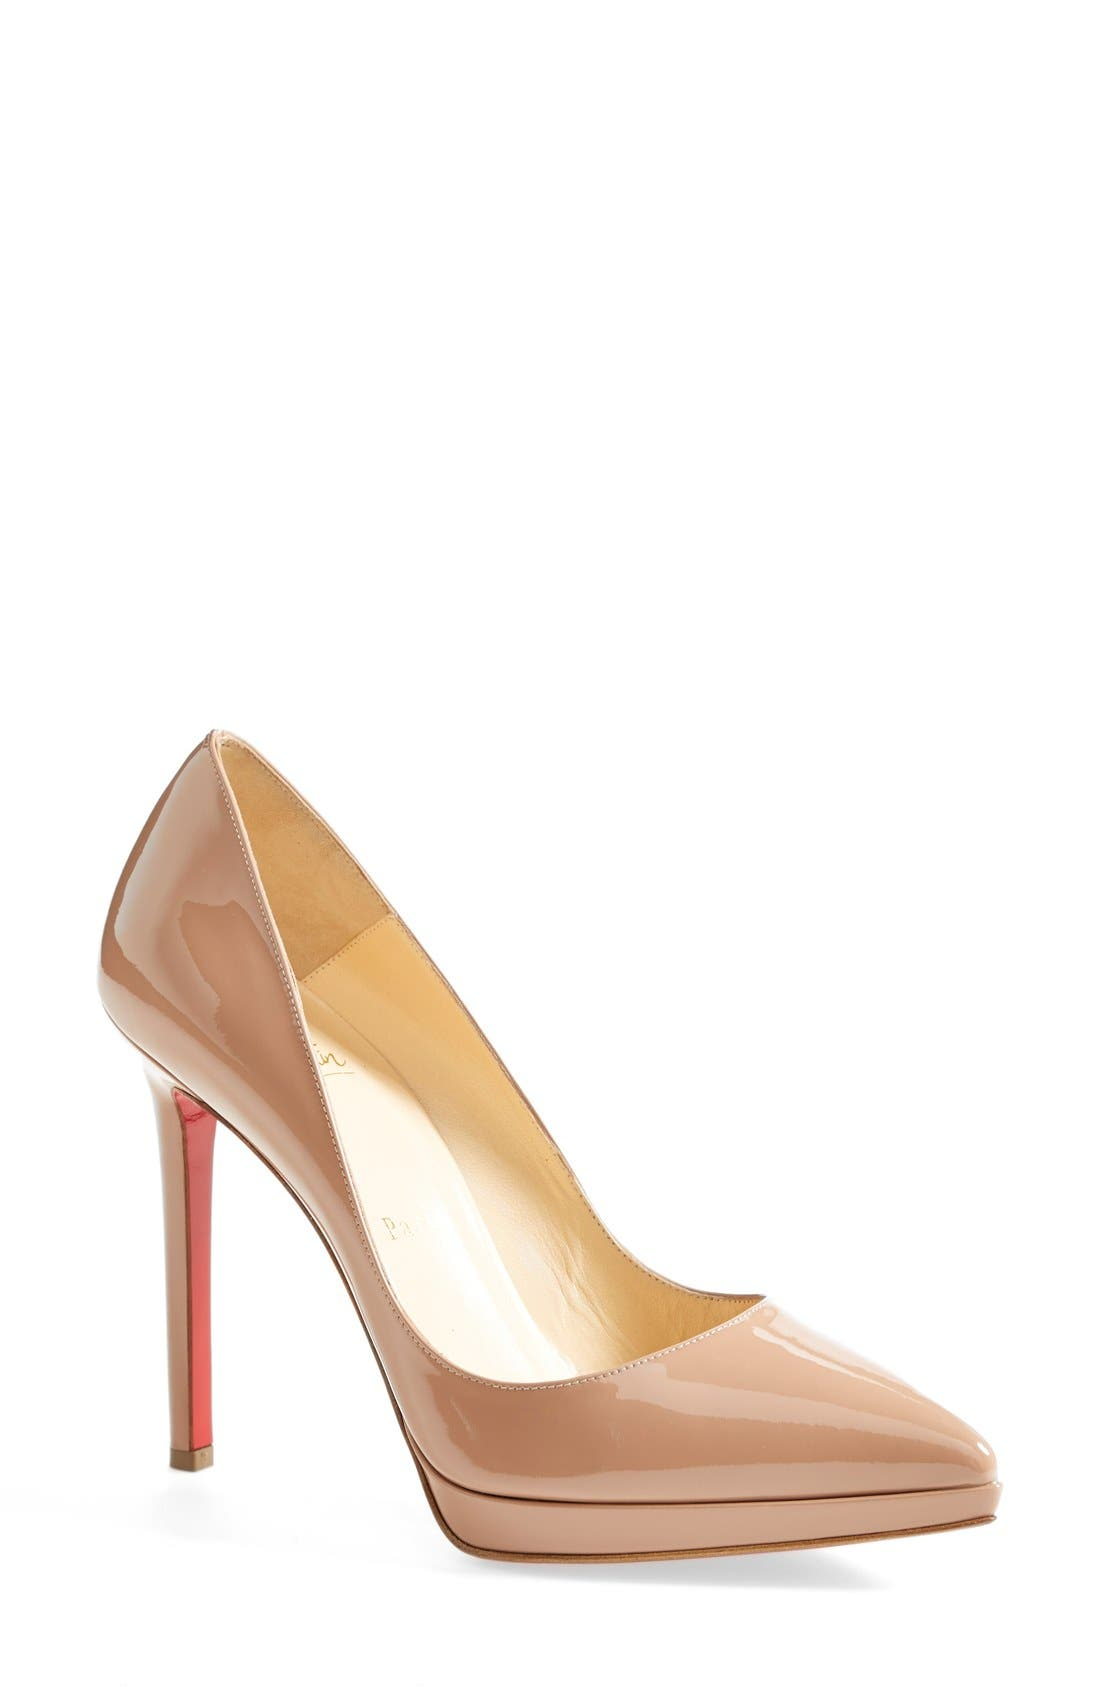 'PIGALLE PLATO' POINTY TOE PUMP